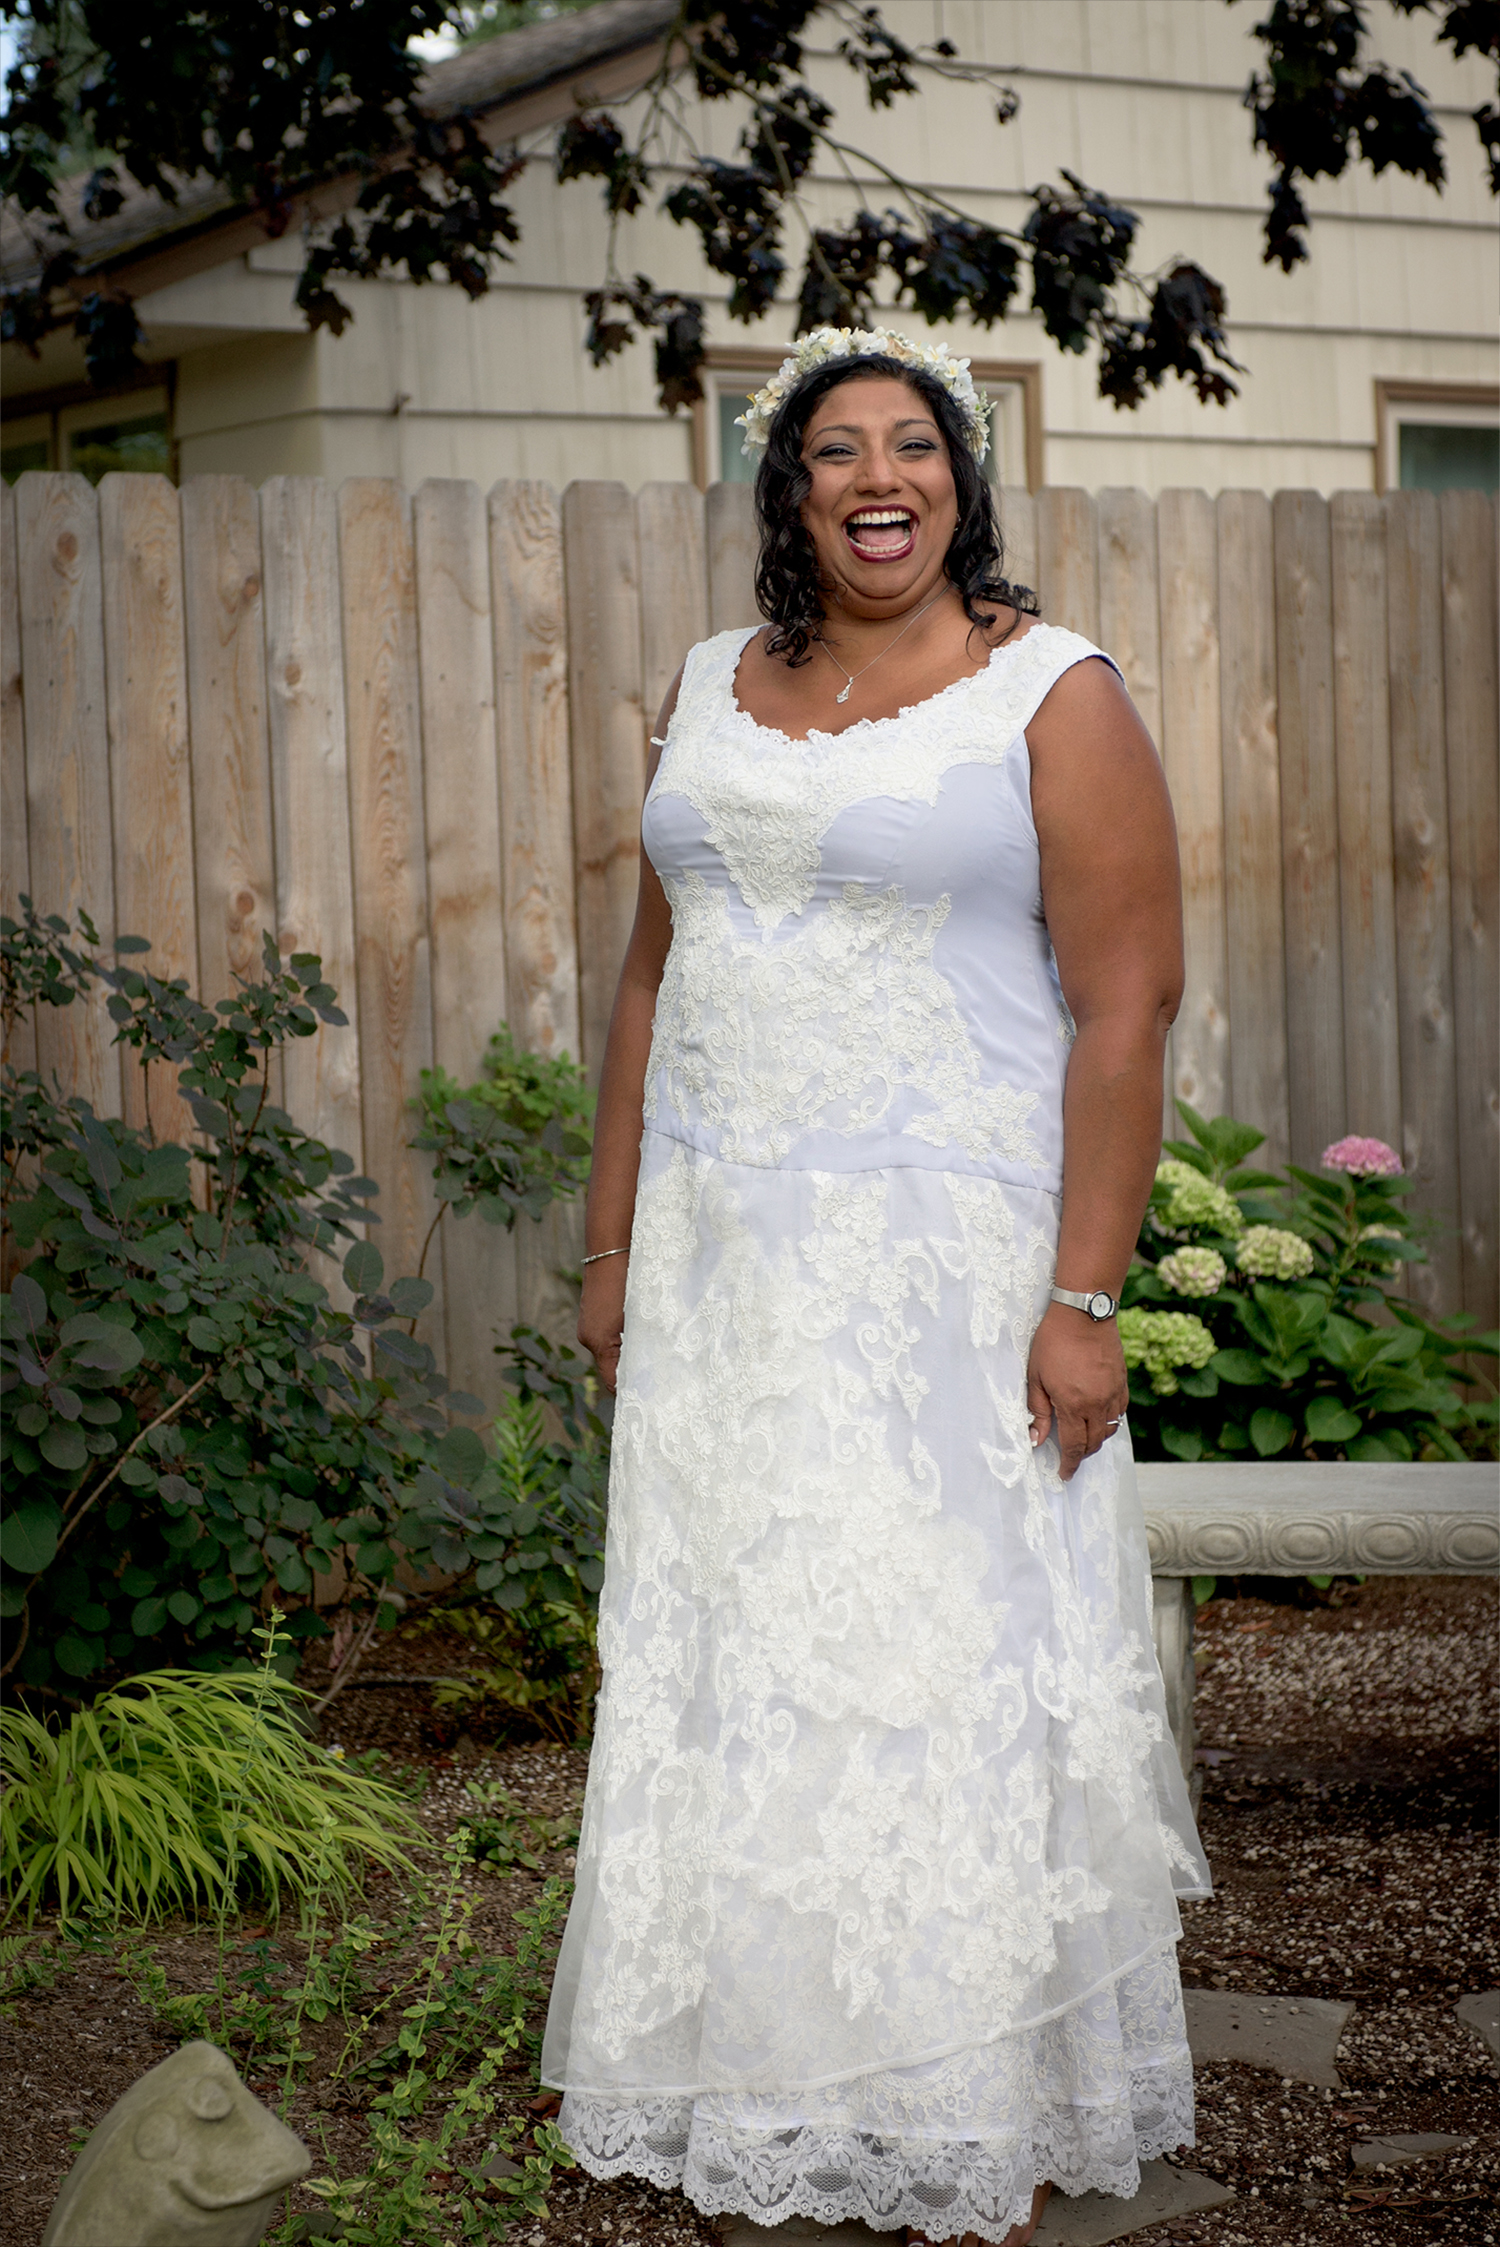 Custom lace wedding dress made from doilies cut from woven lace yardage and appliqued to 2 layers of a frosty chiffon